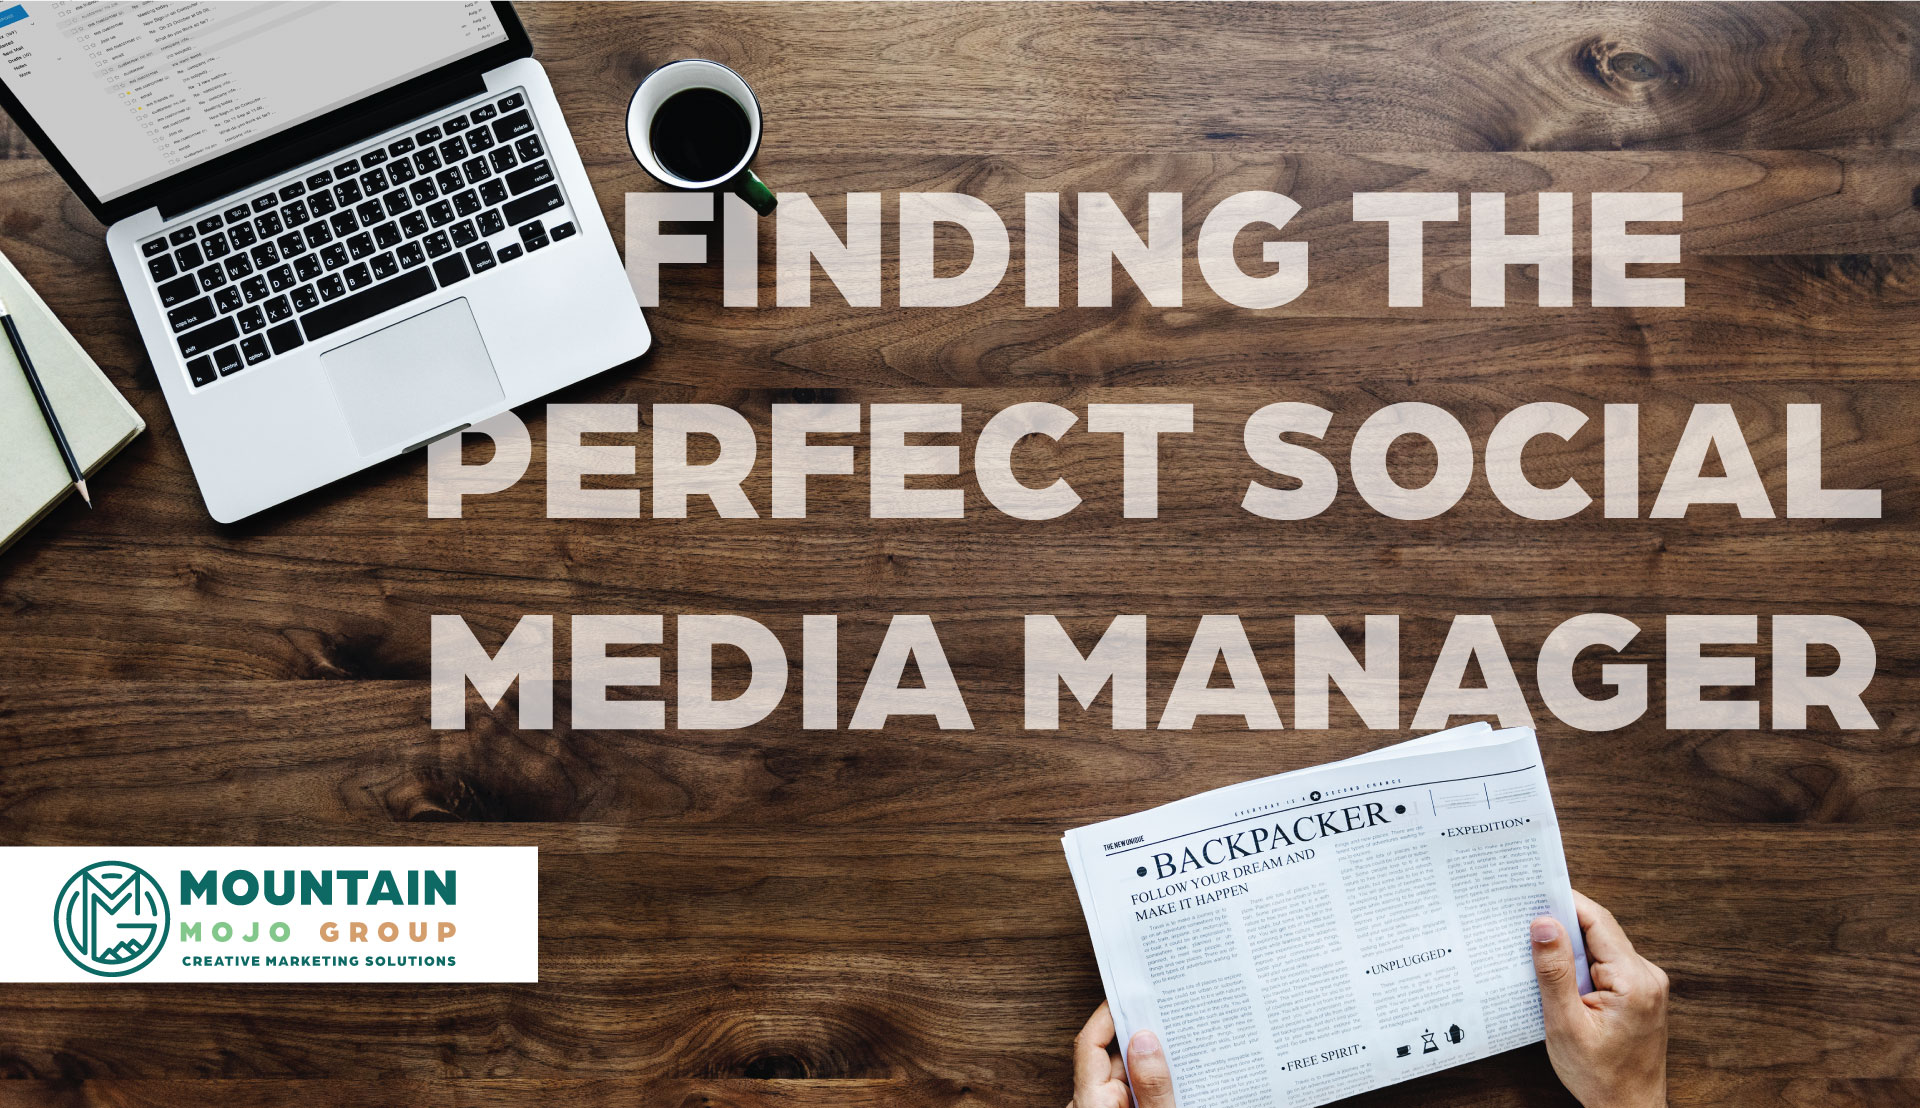 Mountain Mojo Group - How to Hire the Perfect Social Media Manager Blog Cover